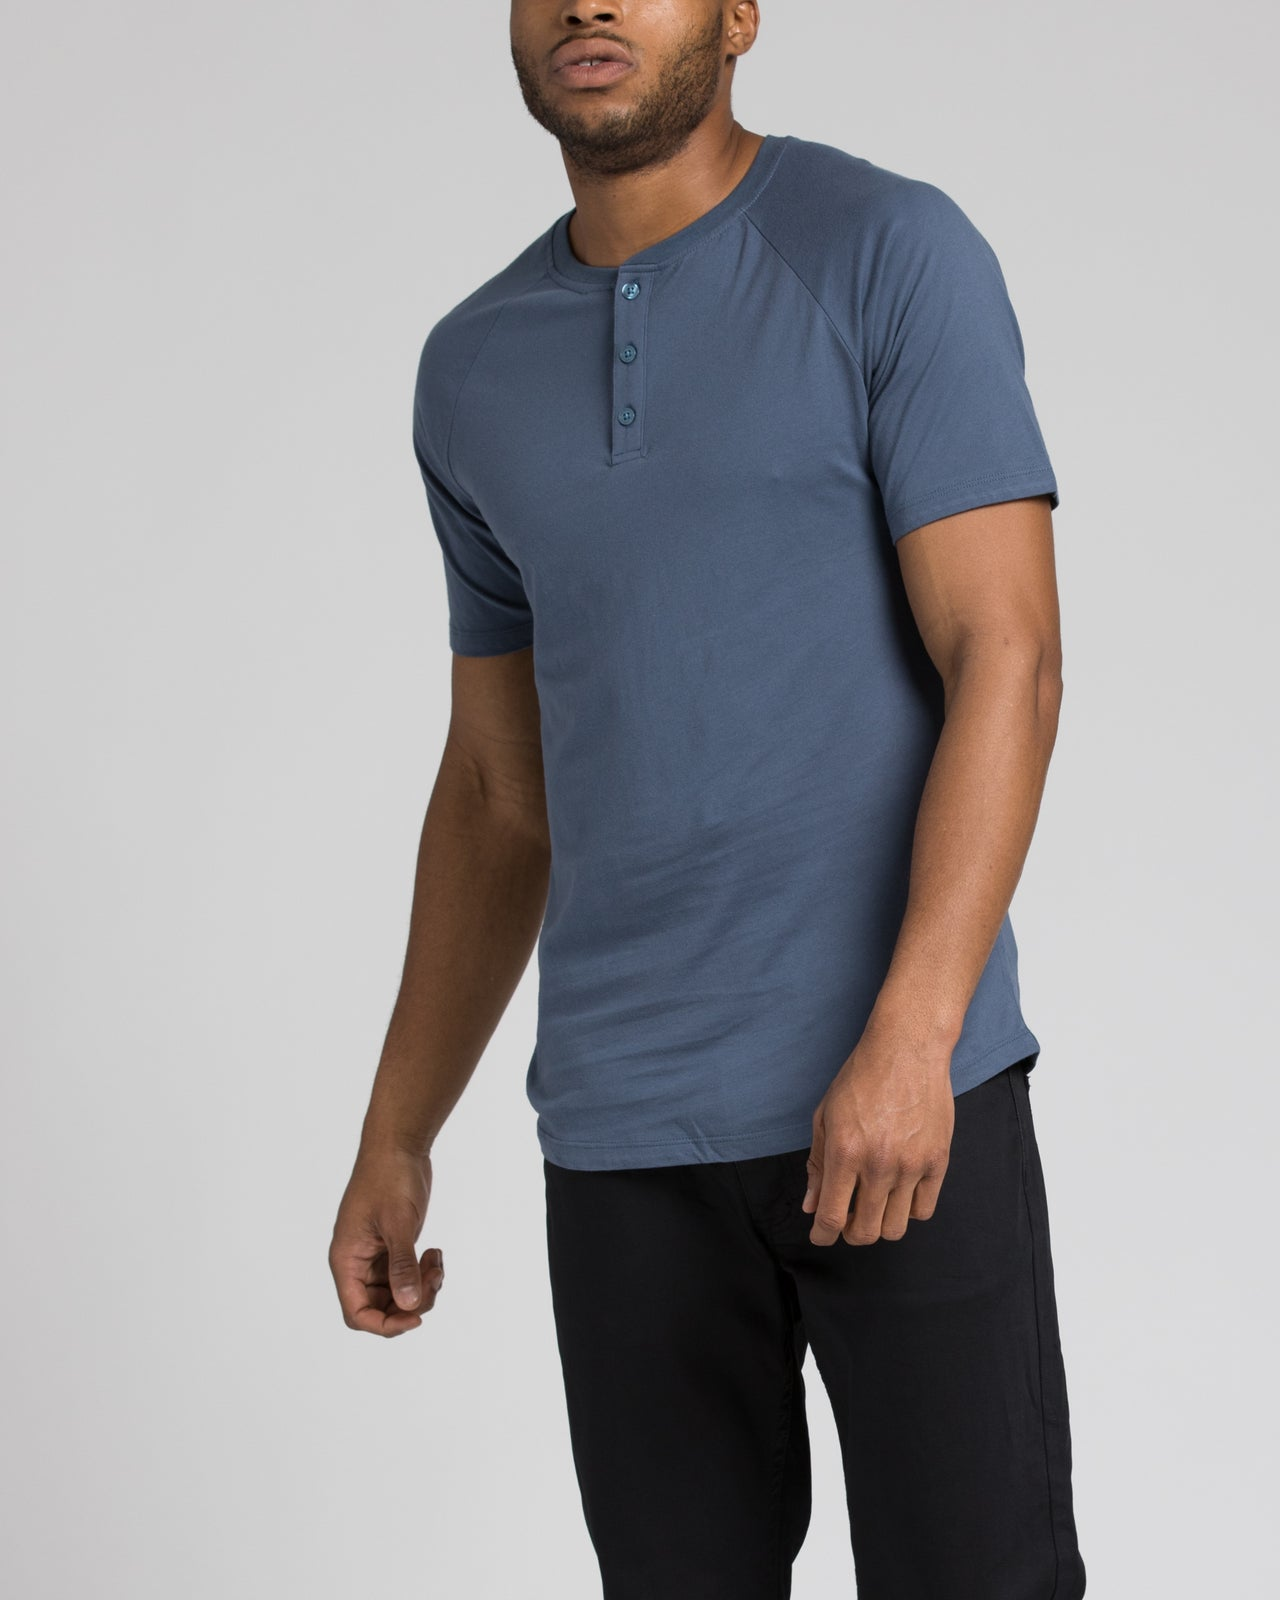 Short Sleeve Henley - Color: Heather Navy | Blue